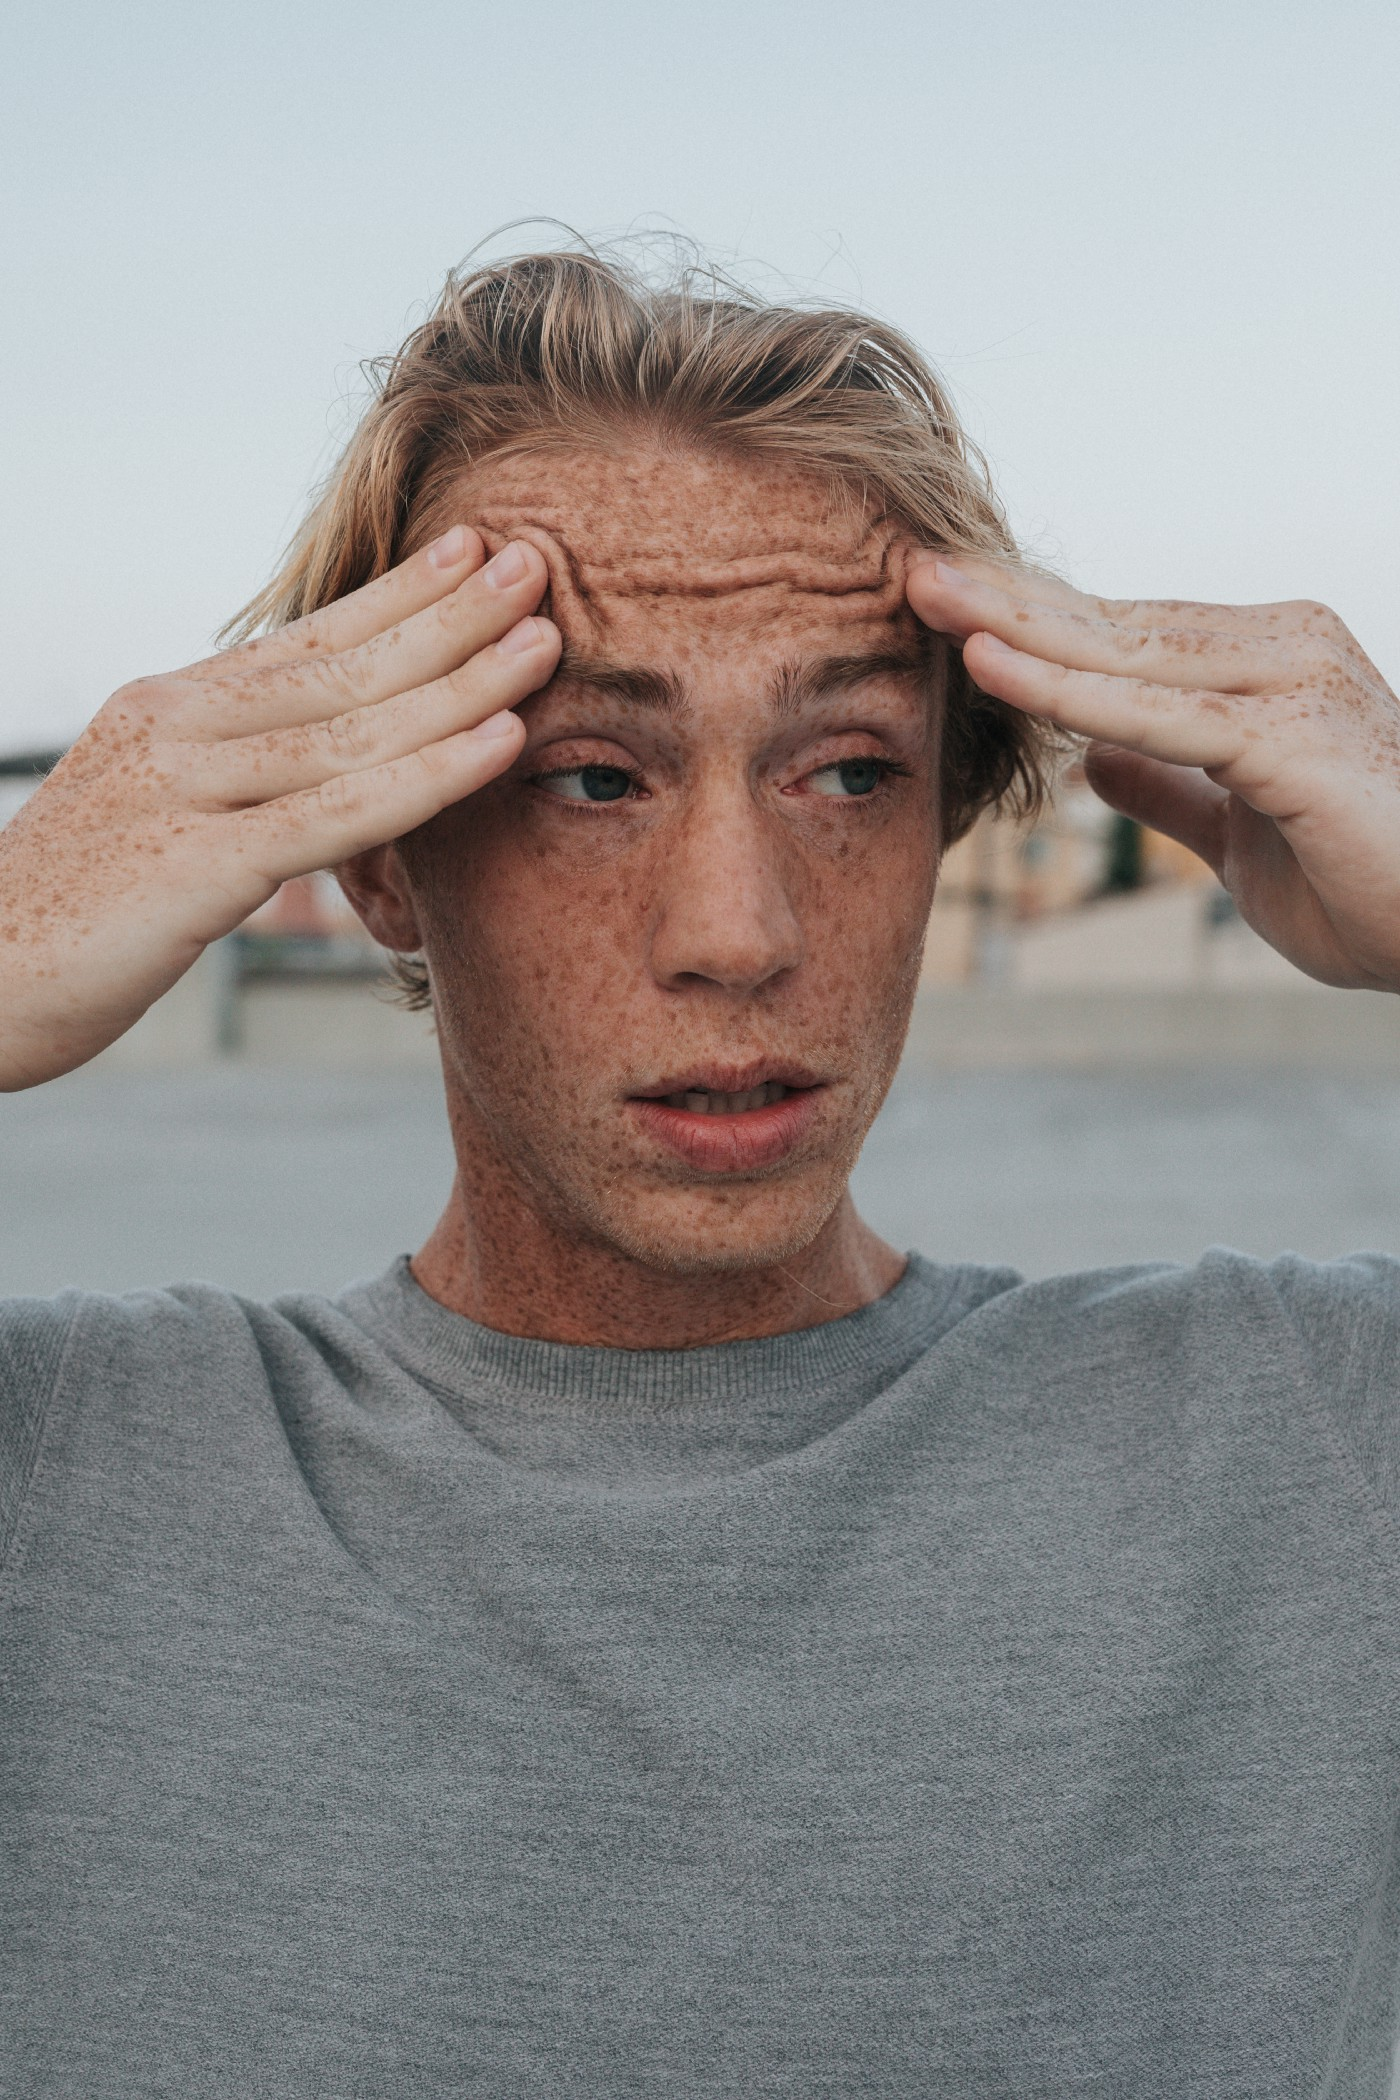 A young caucasian male holding his hands to his head in slight fear and uncertainty.